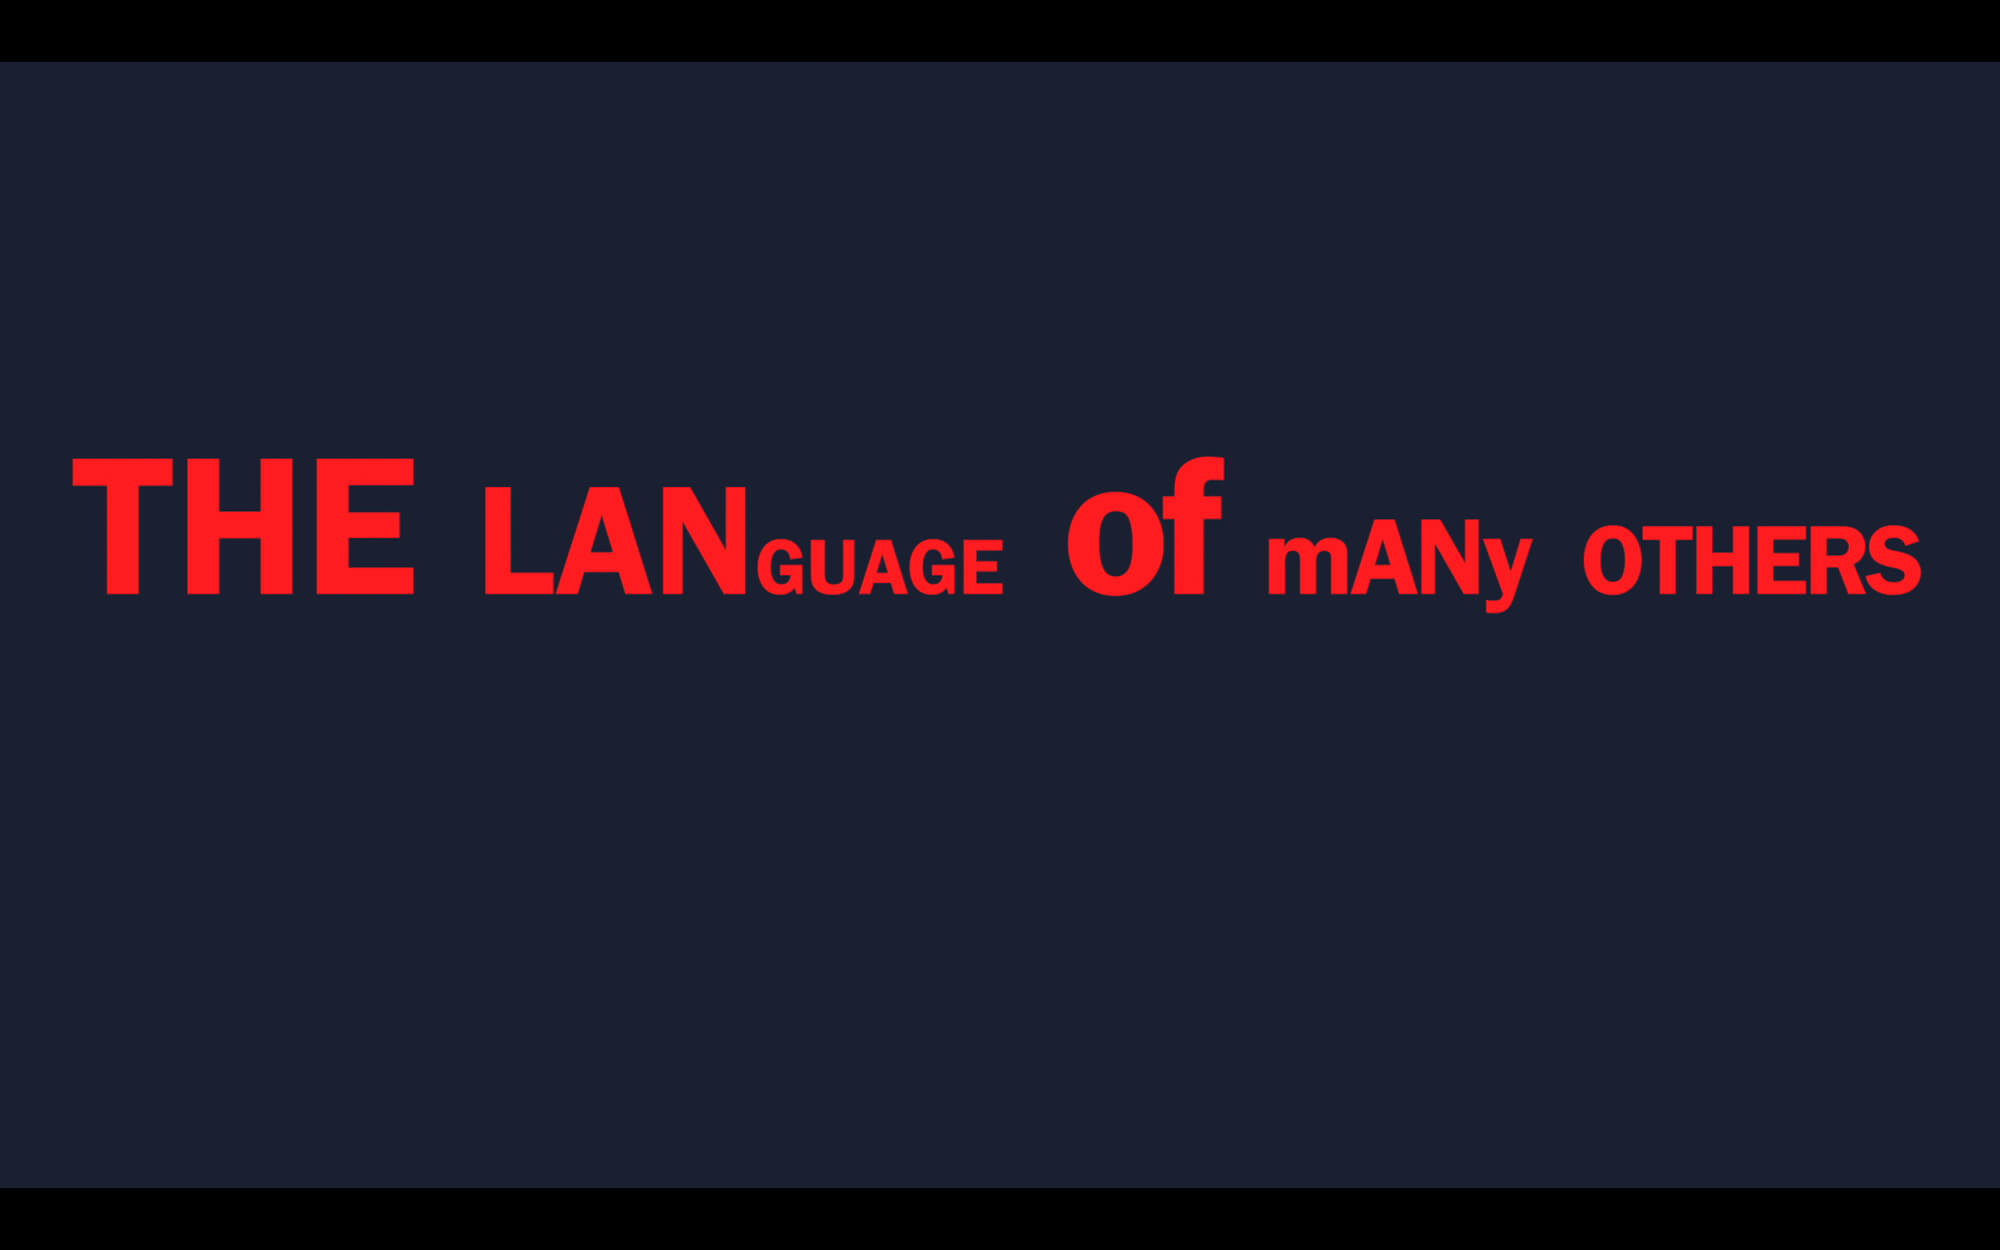 Language of many others by Simon Störk